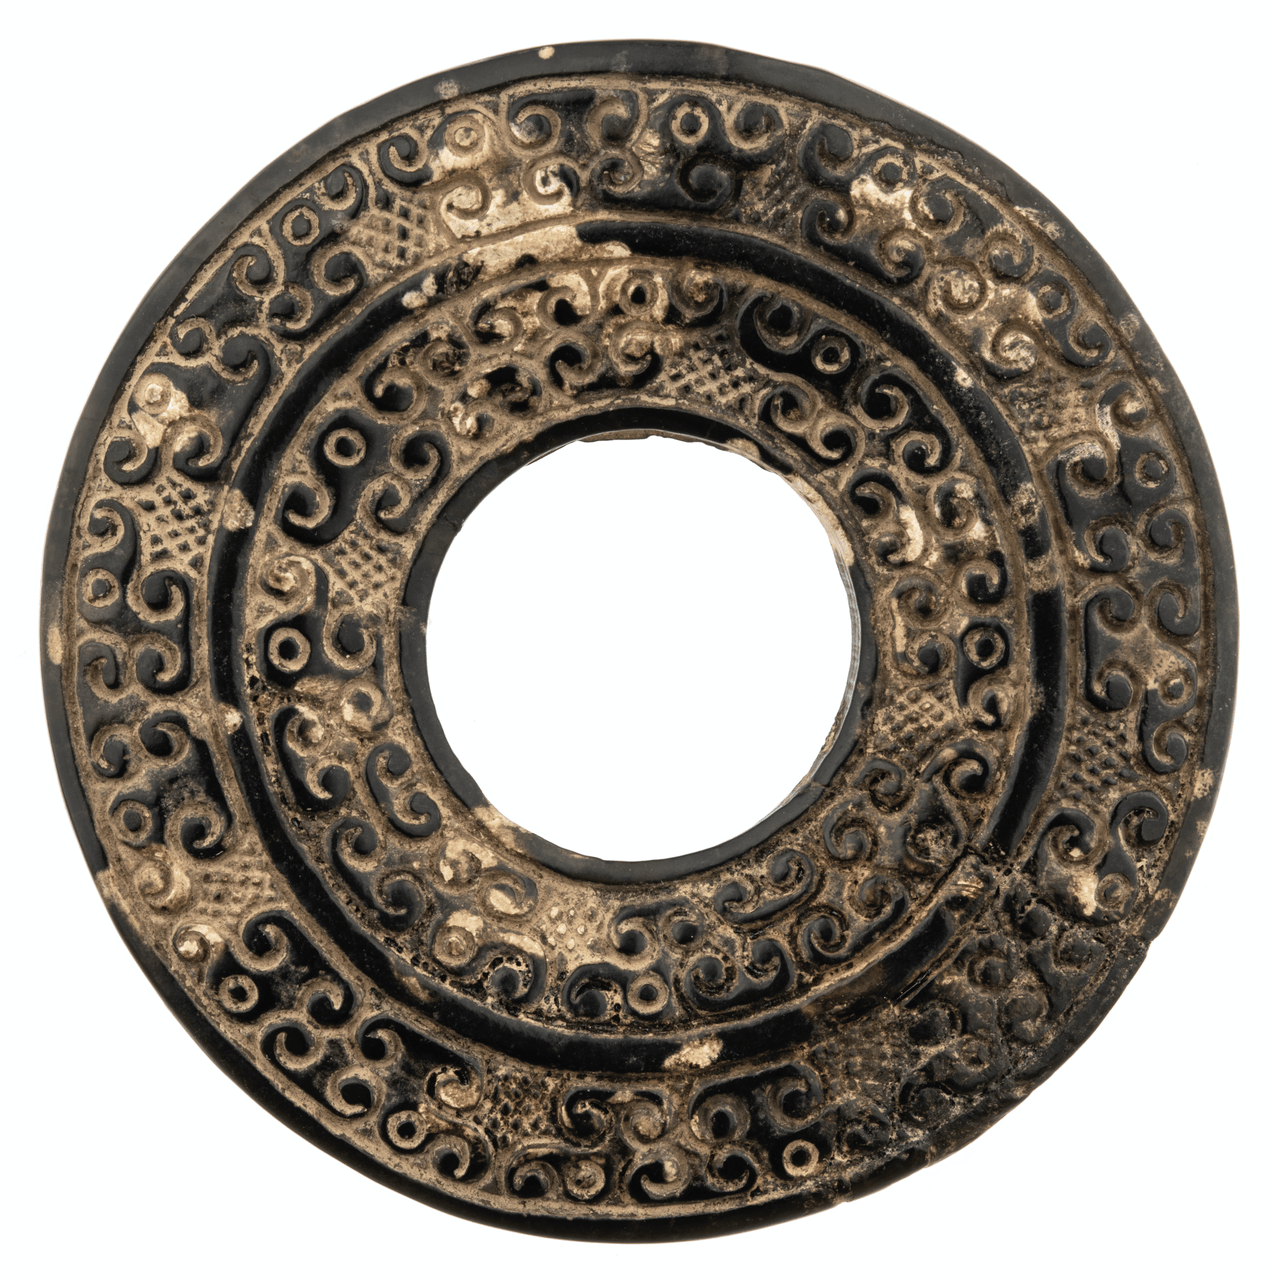 A Vintage Chinese Archaic Bi Disc Hard Stone Pendant